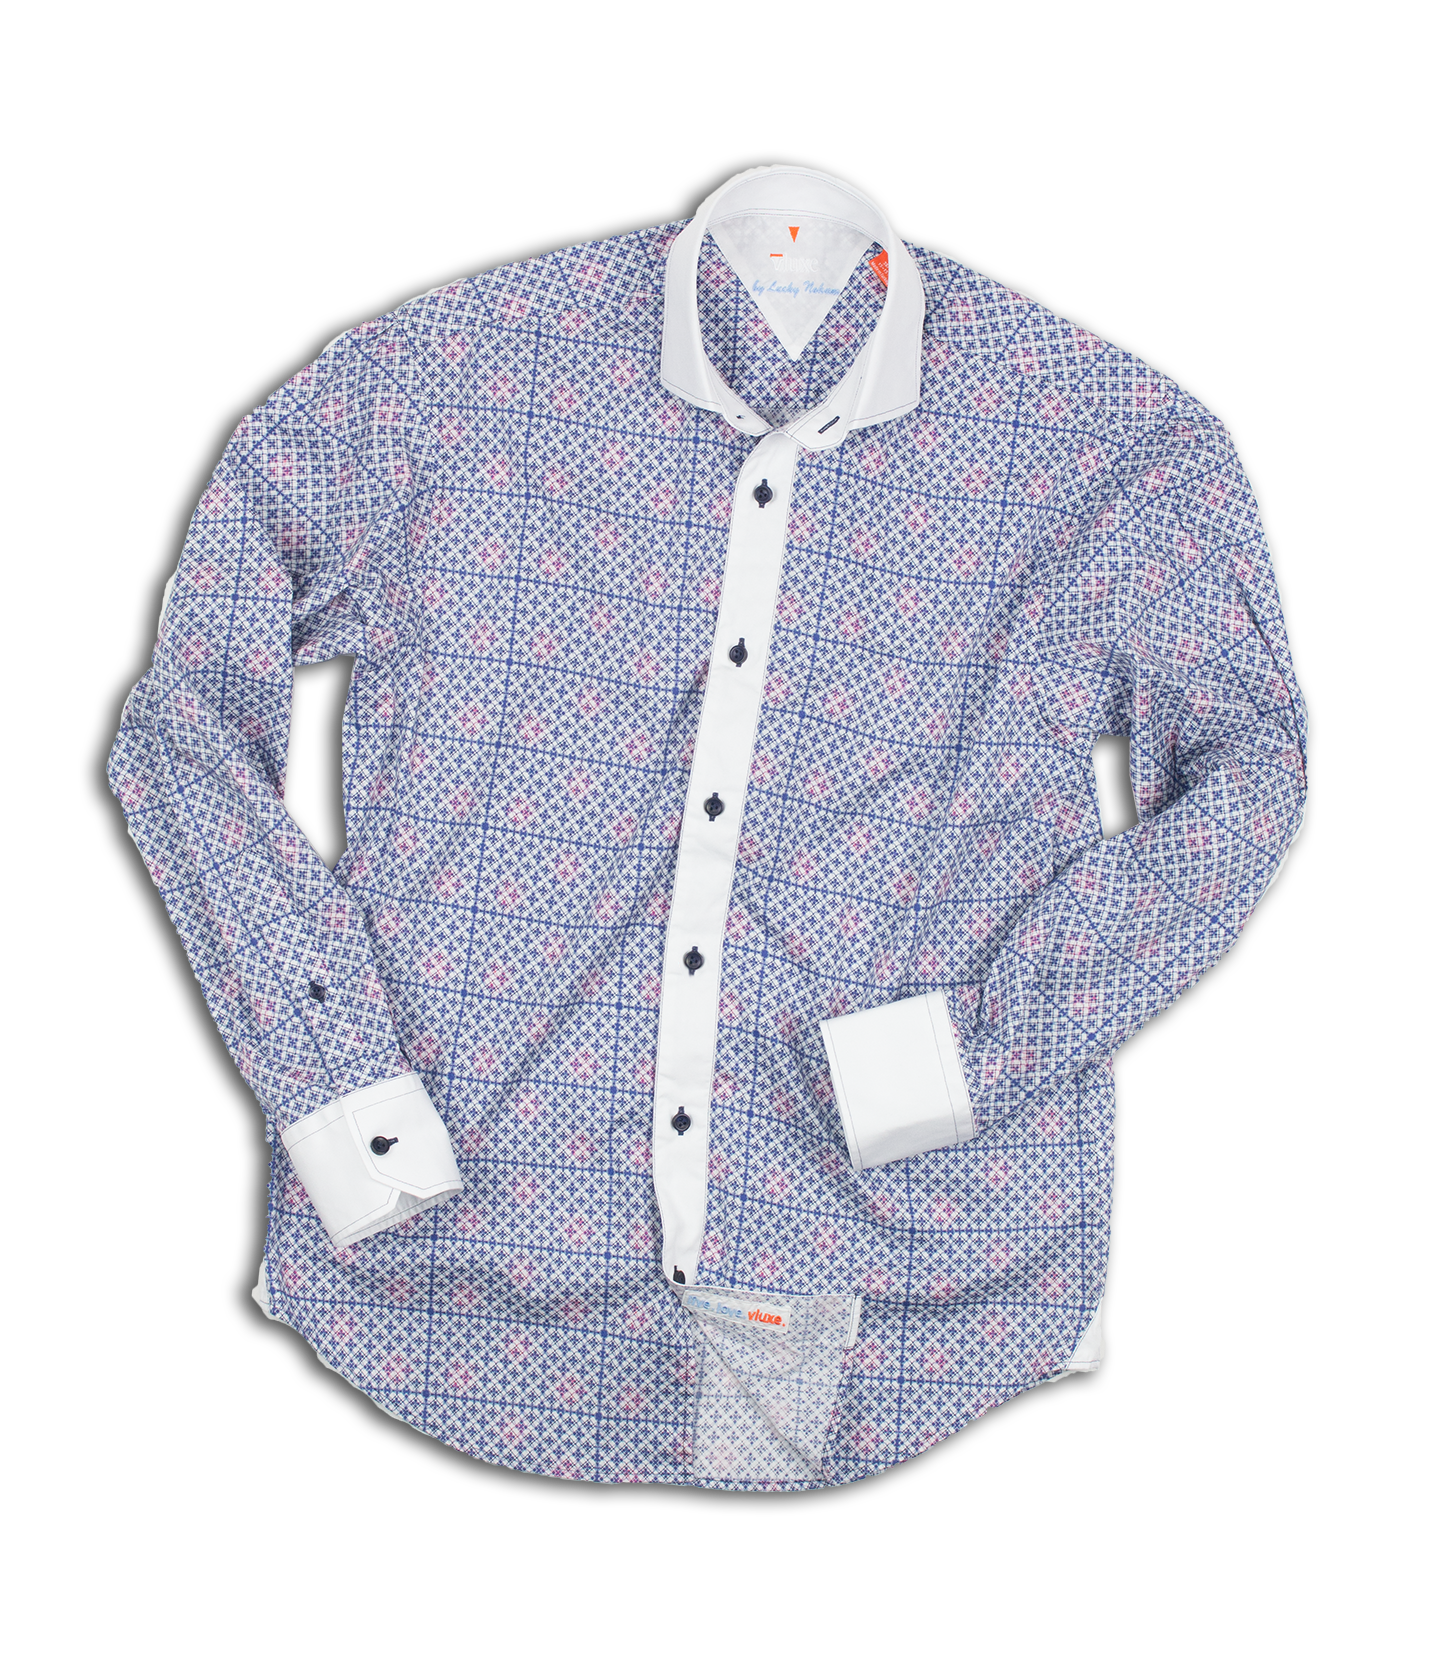 Contrast Mixed Media Shirt V L722